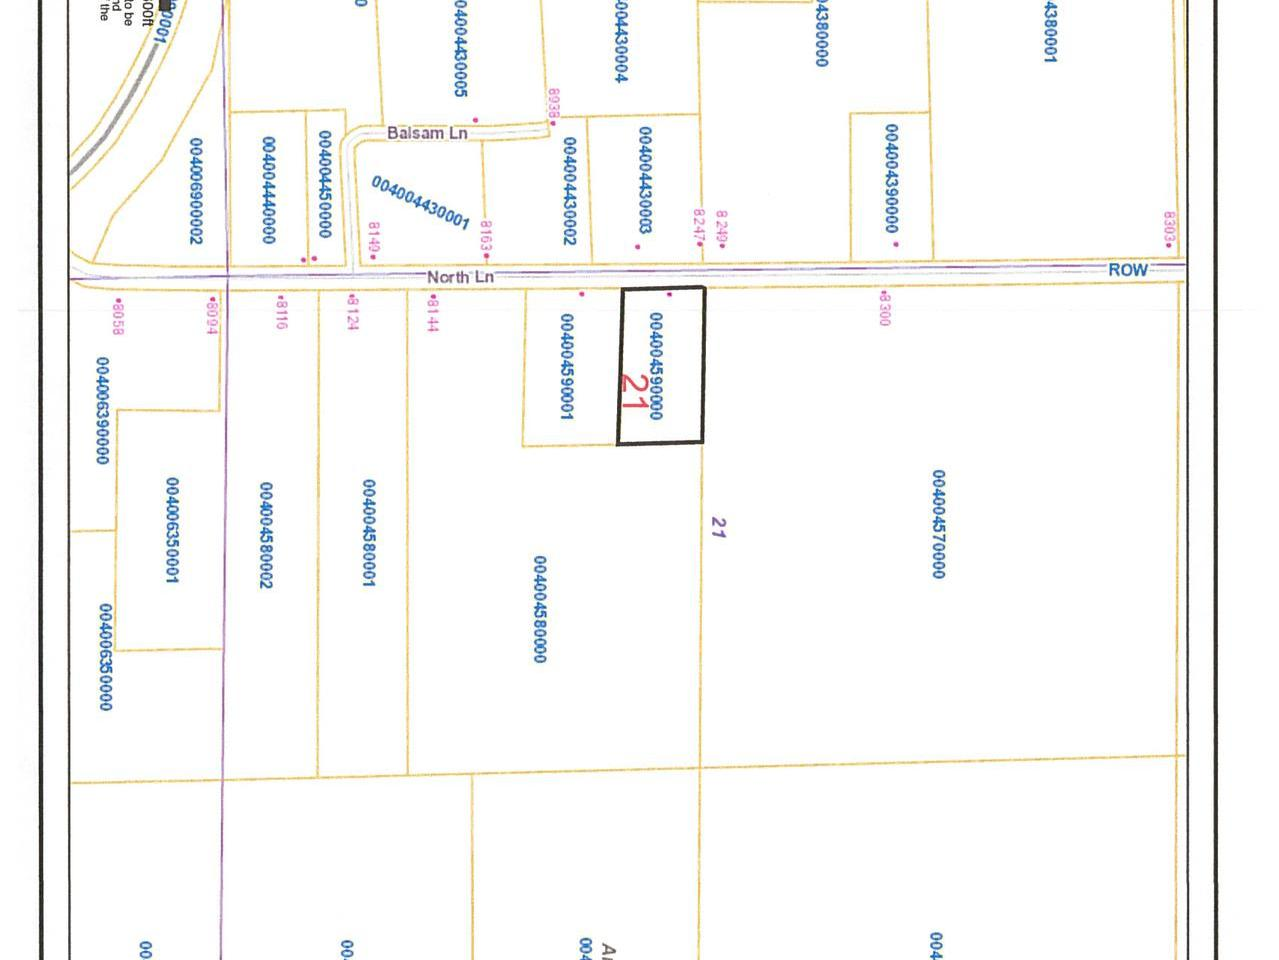 Residential building lot on 2.25 acres. Located in a quiet neighborhood of some beautiful homes, just north of town of Argonne on a no thru road. Electricity, well, and septic are already present. Large parcel is wooded and only a short distance from 1,673- acre Pine Lake and many other recreational opportunities. Approximately 7 miles to Crandon and 33 miles to Rhinelander.